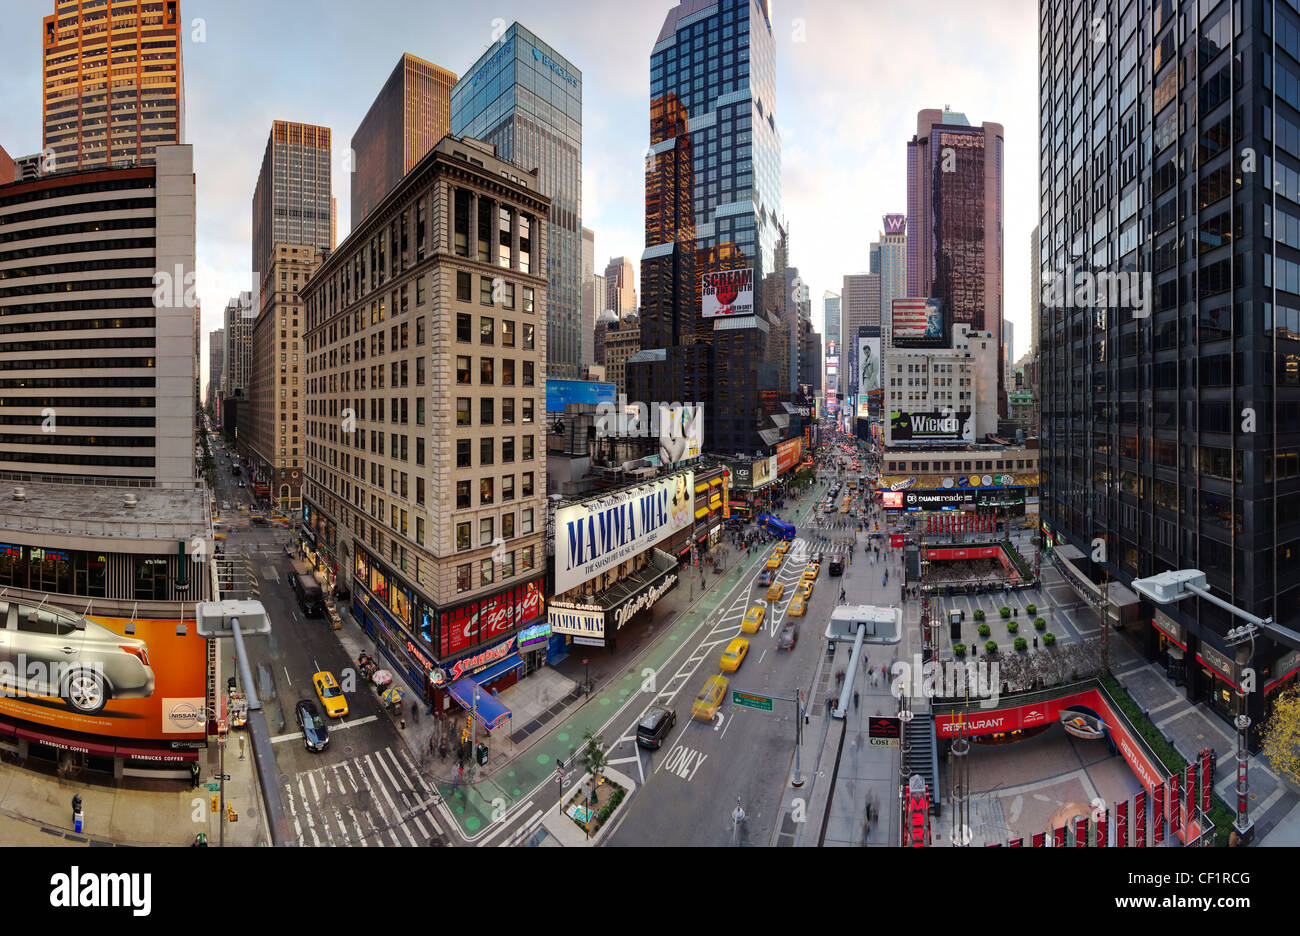 Manhattan, Broadway looking towards Times Square, New York, United States of America - Stock Image